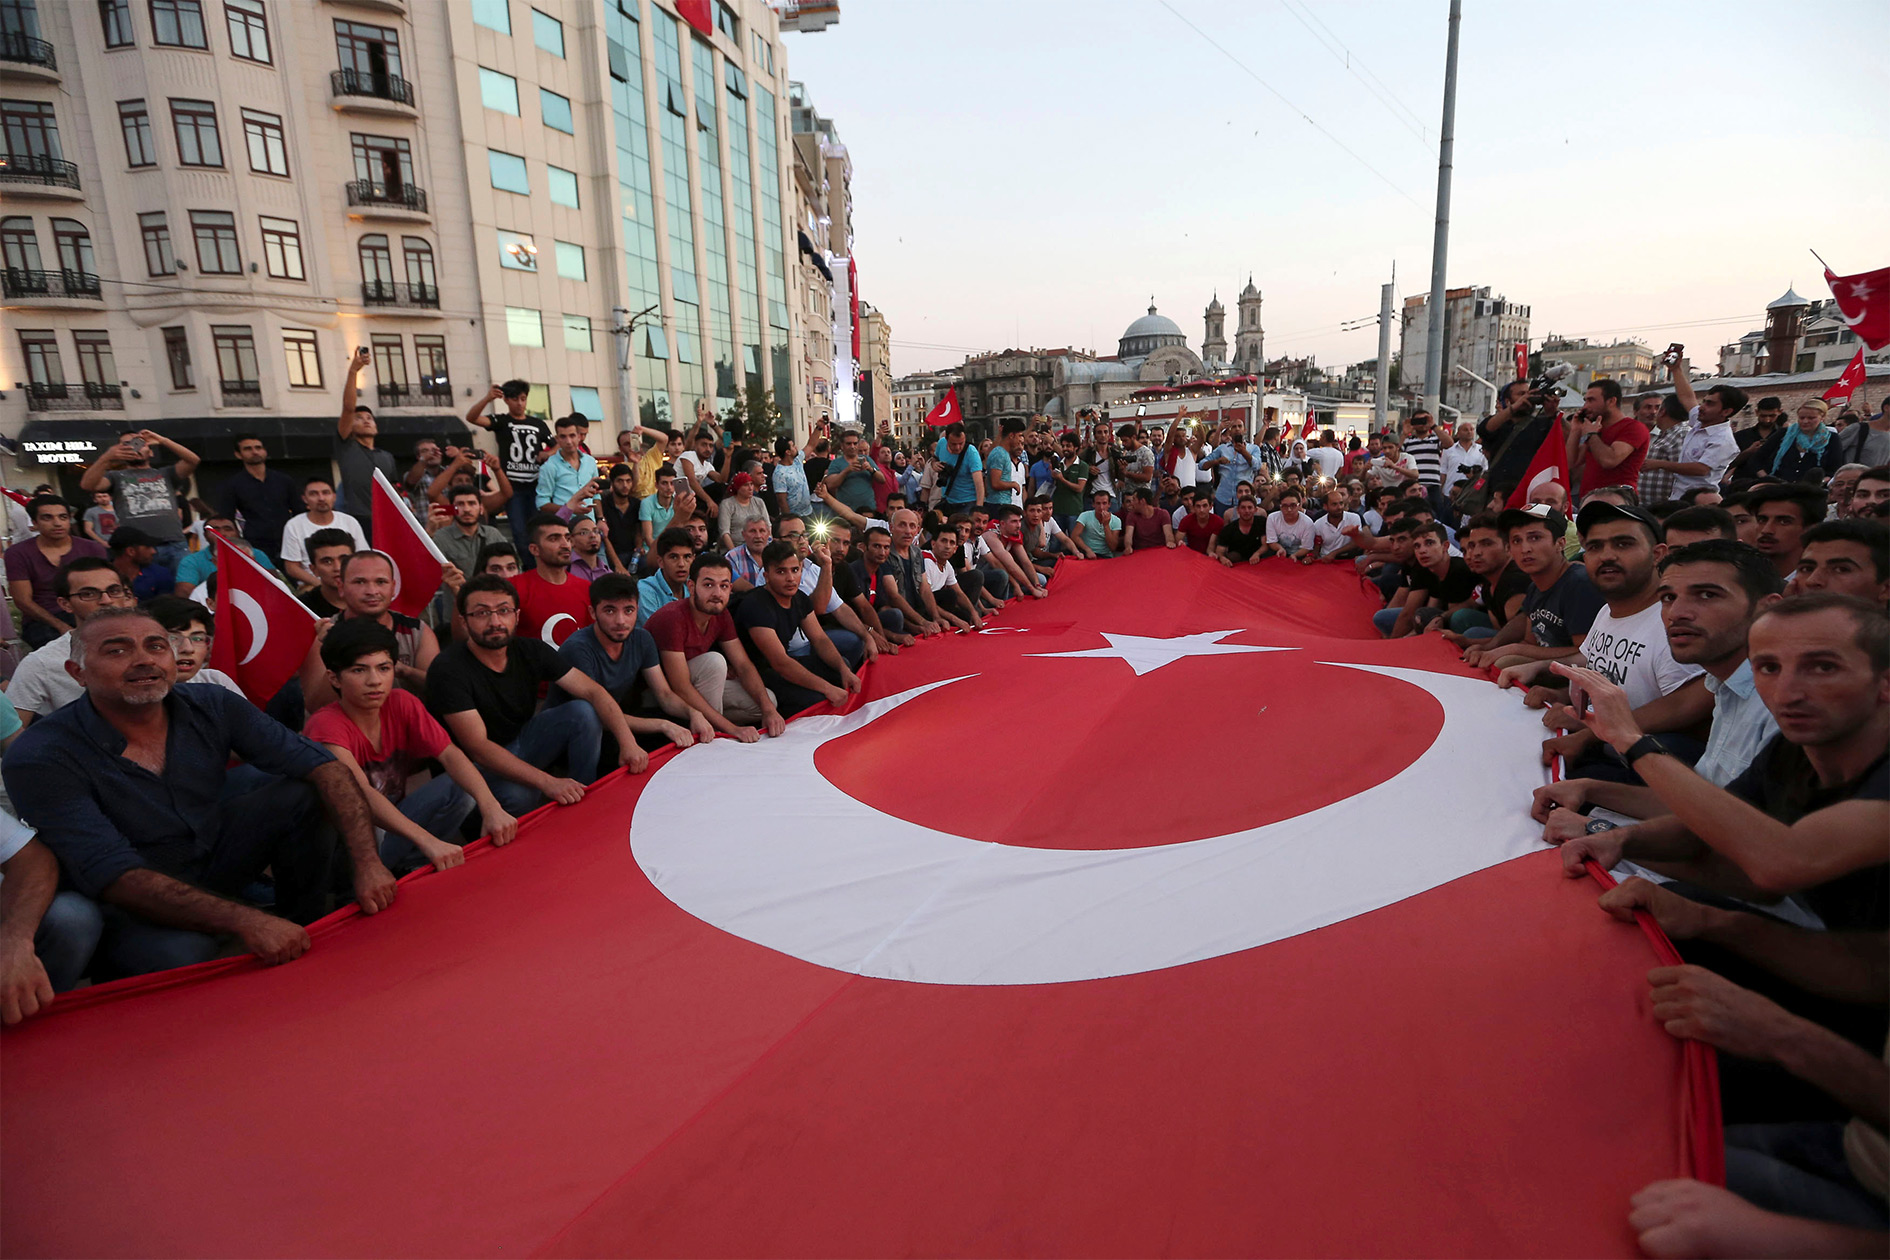 Supporters of Turkish President Tayyip Erdoğan wave a huge national flag as they gather at Taksim Square in central Istanbul, Turkey, 16 July 2016.